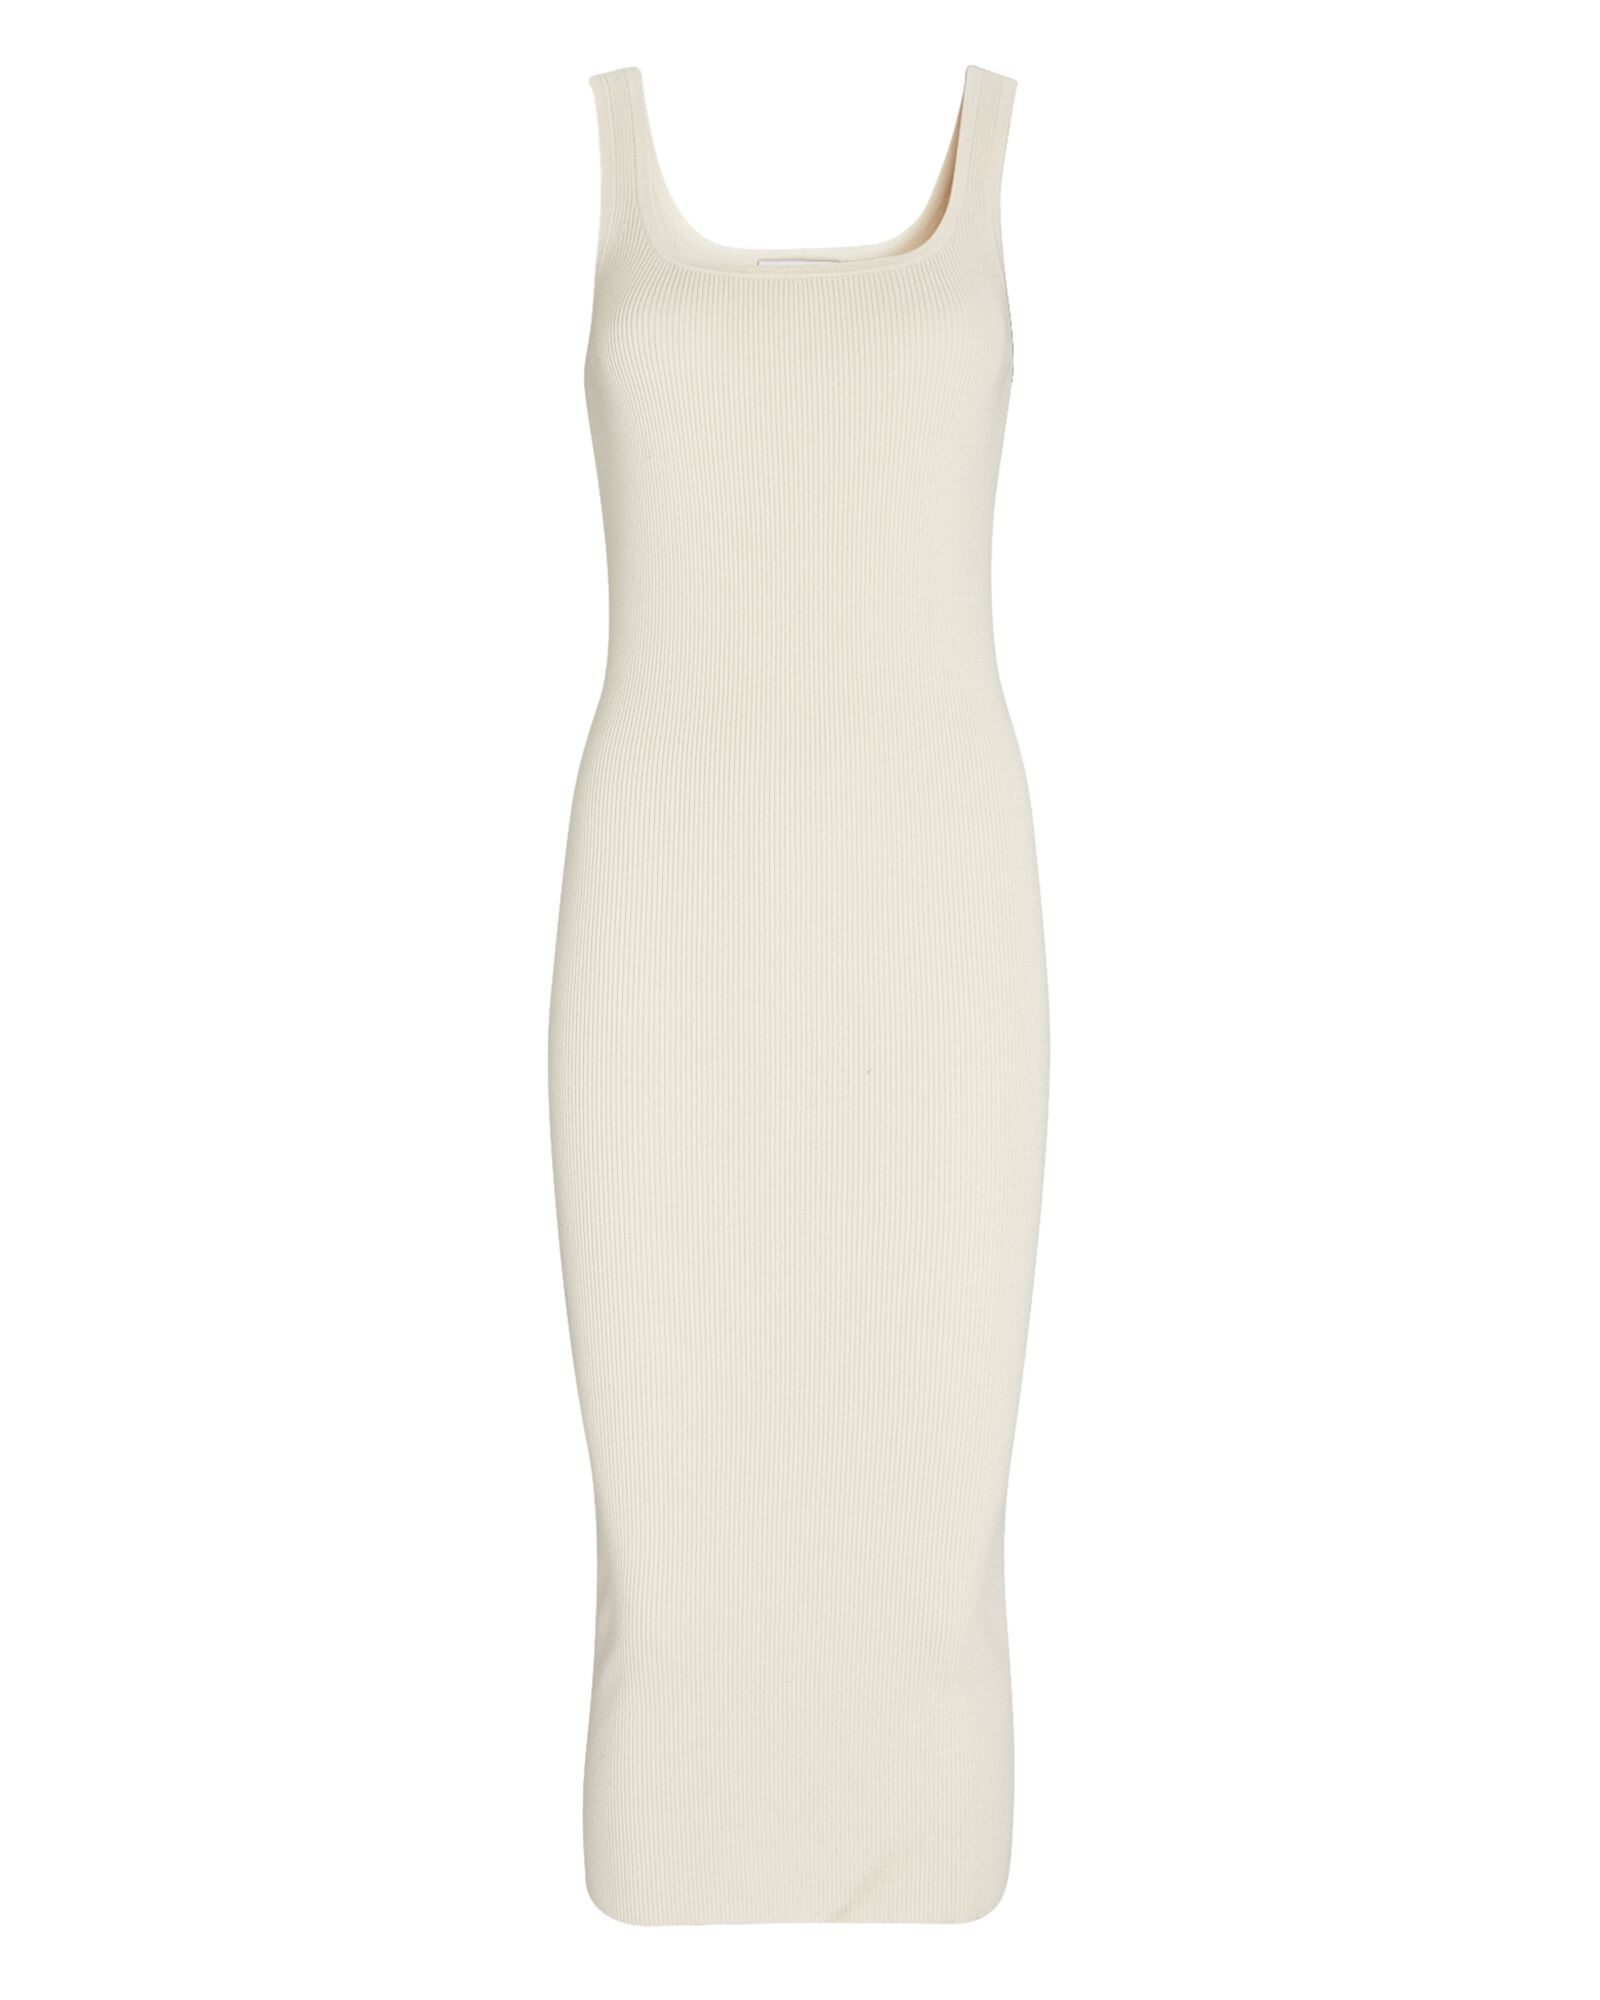 Harlow Rib Knit Tank Dress, IVORY, hi-res